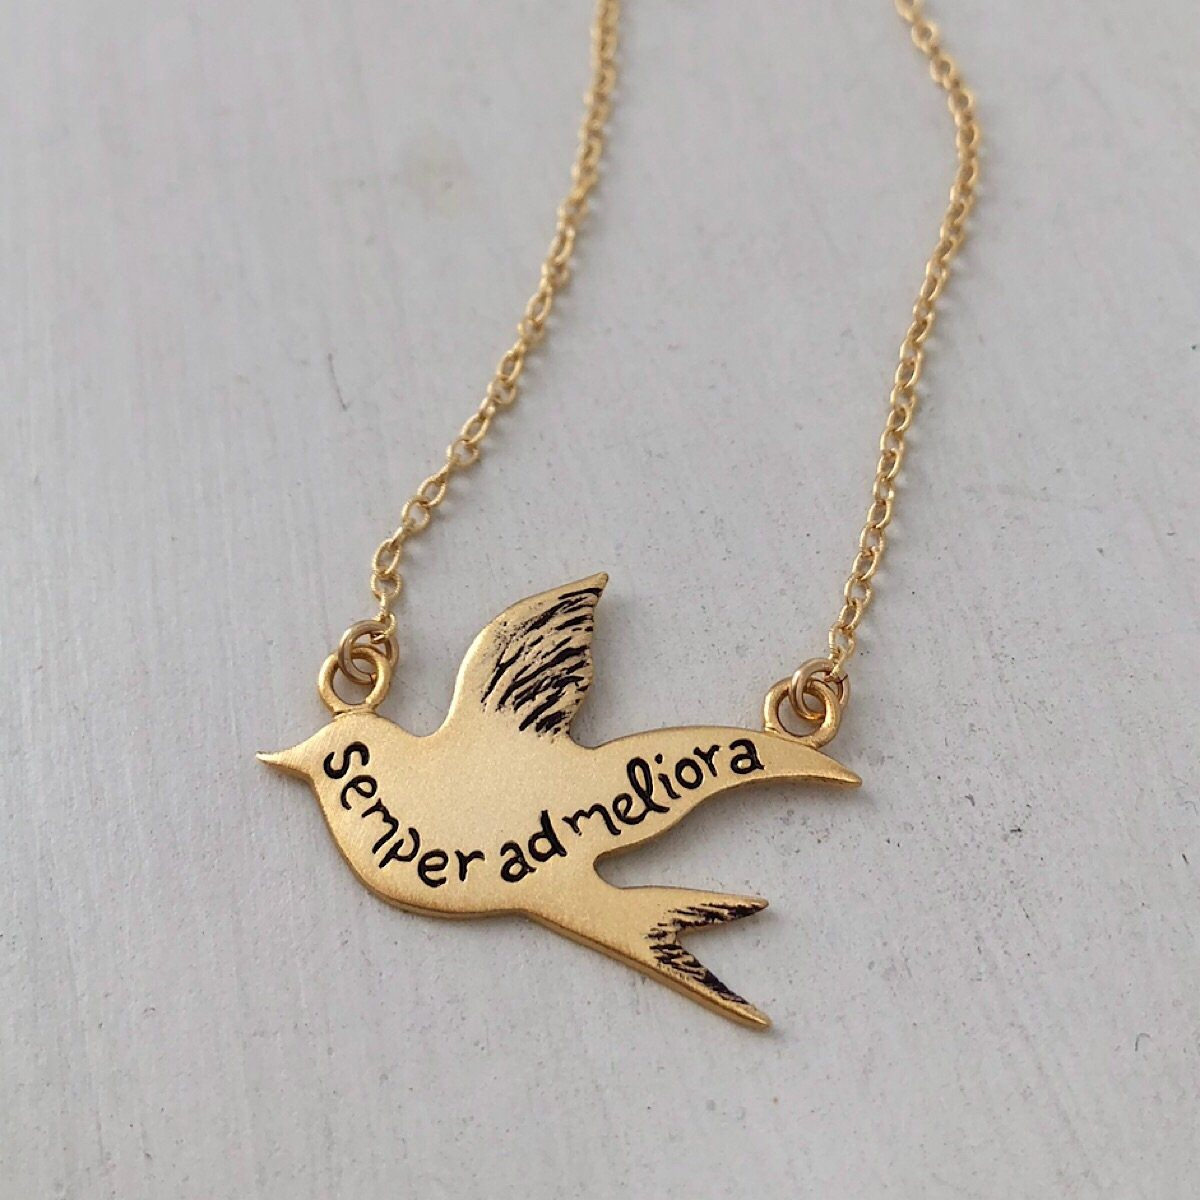 Better Things Necklace - IsabelleGraceJewelry